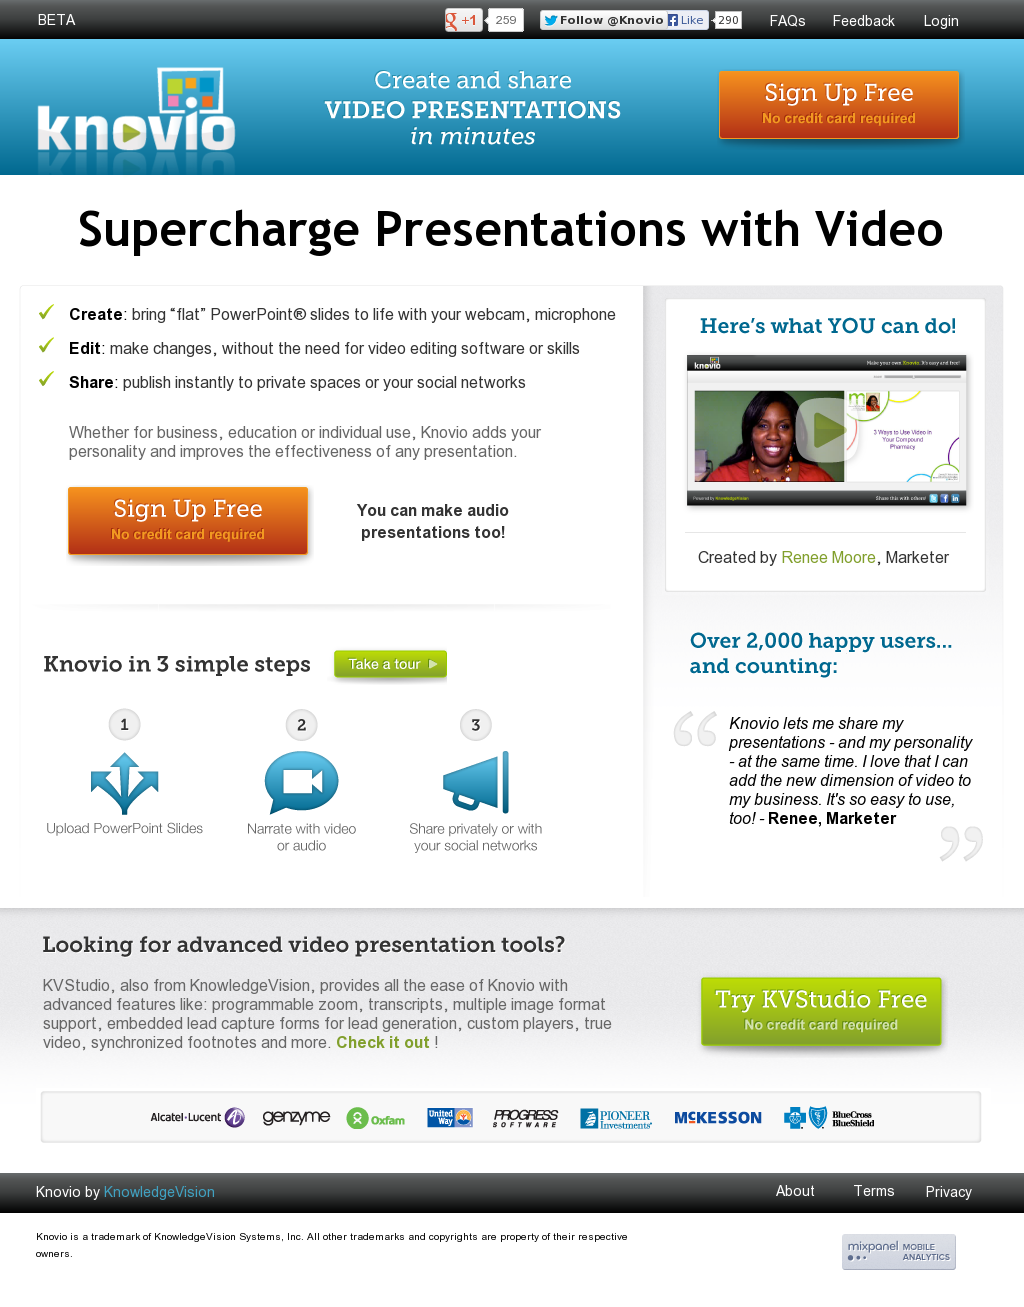 knovio allows users to upload static powerpoint presentations and